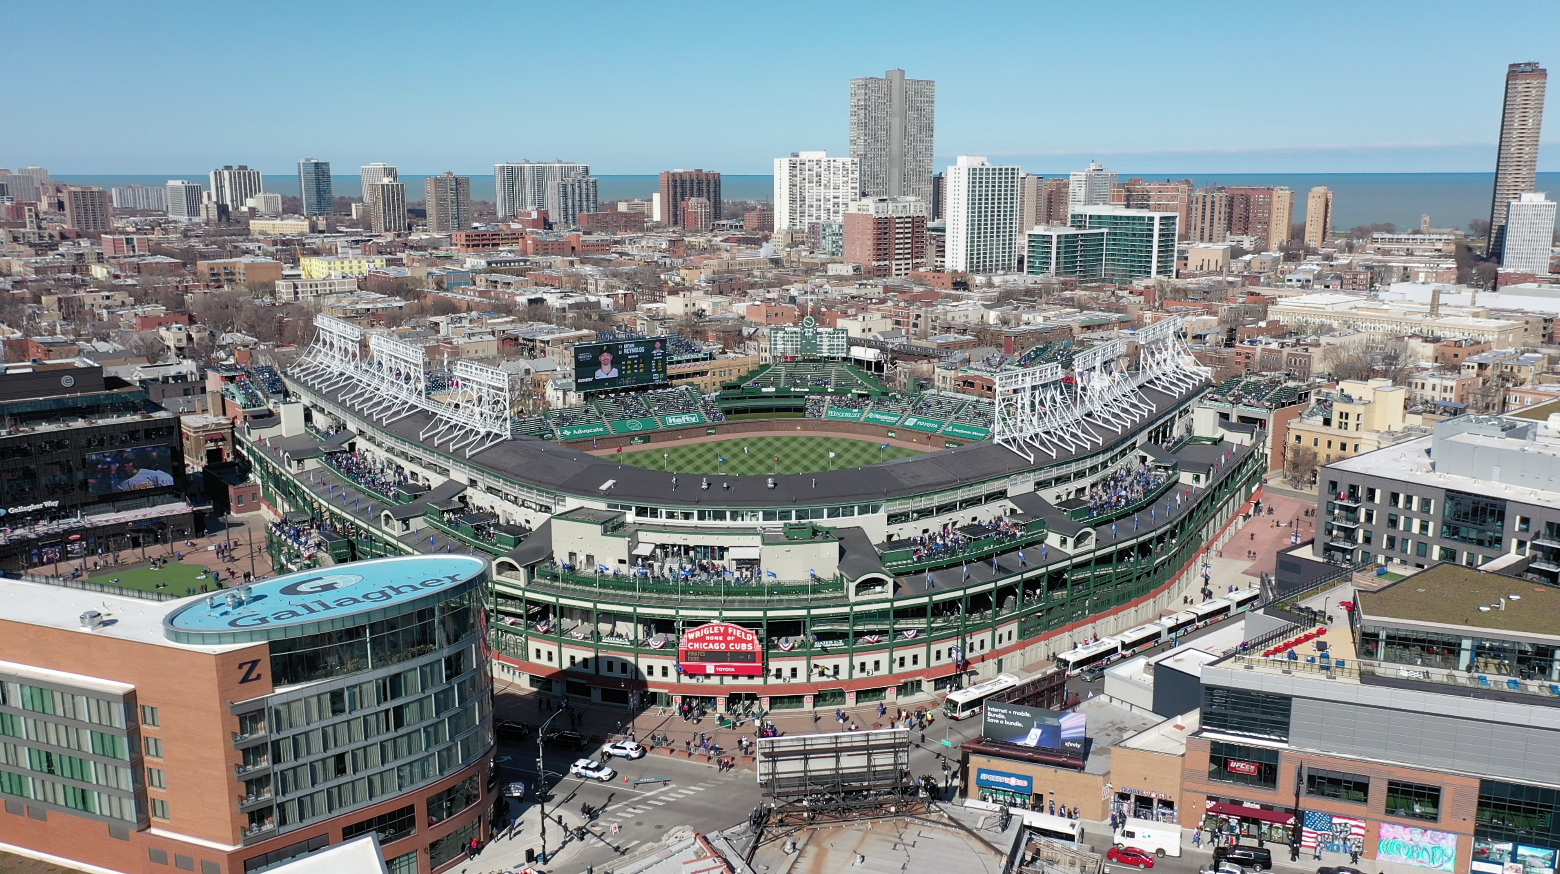 Another Returning Event To Remind Us We're Just One Step Closer To Normalcy Cubs Home Opener